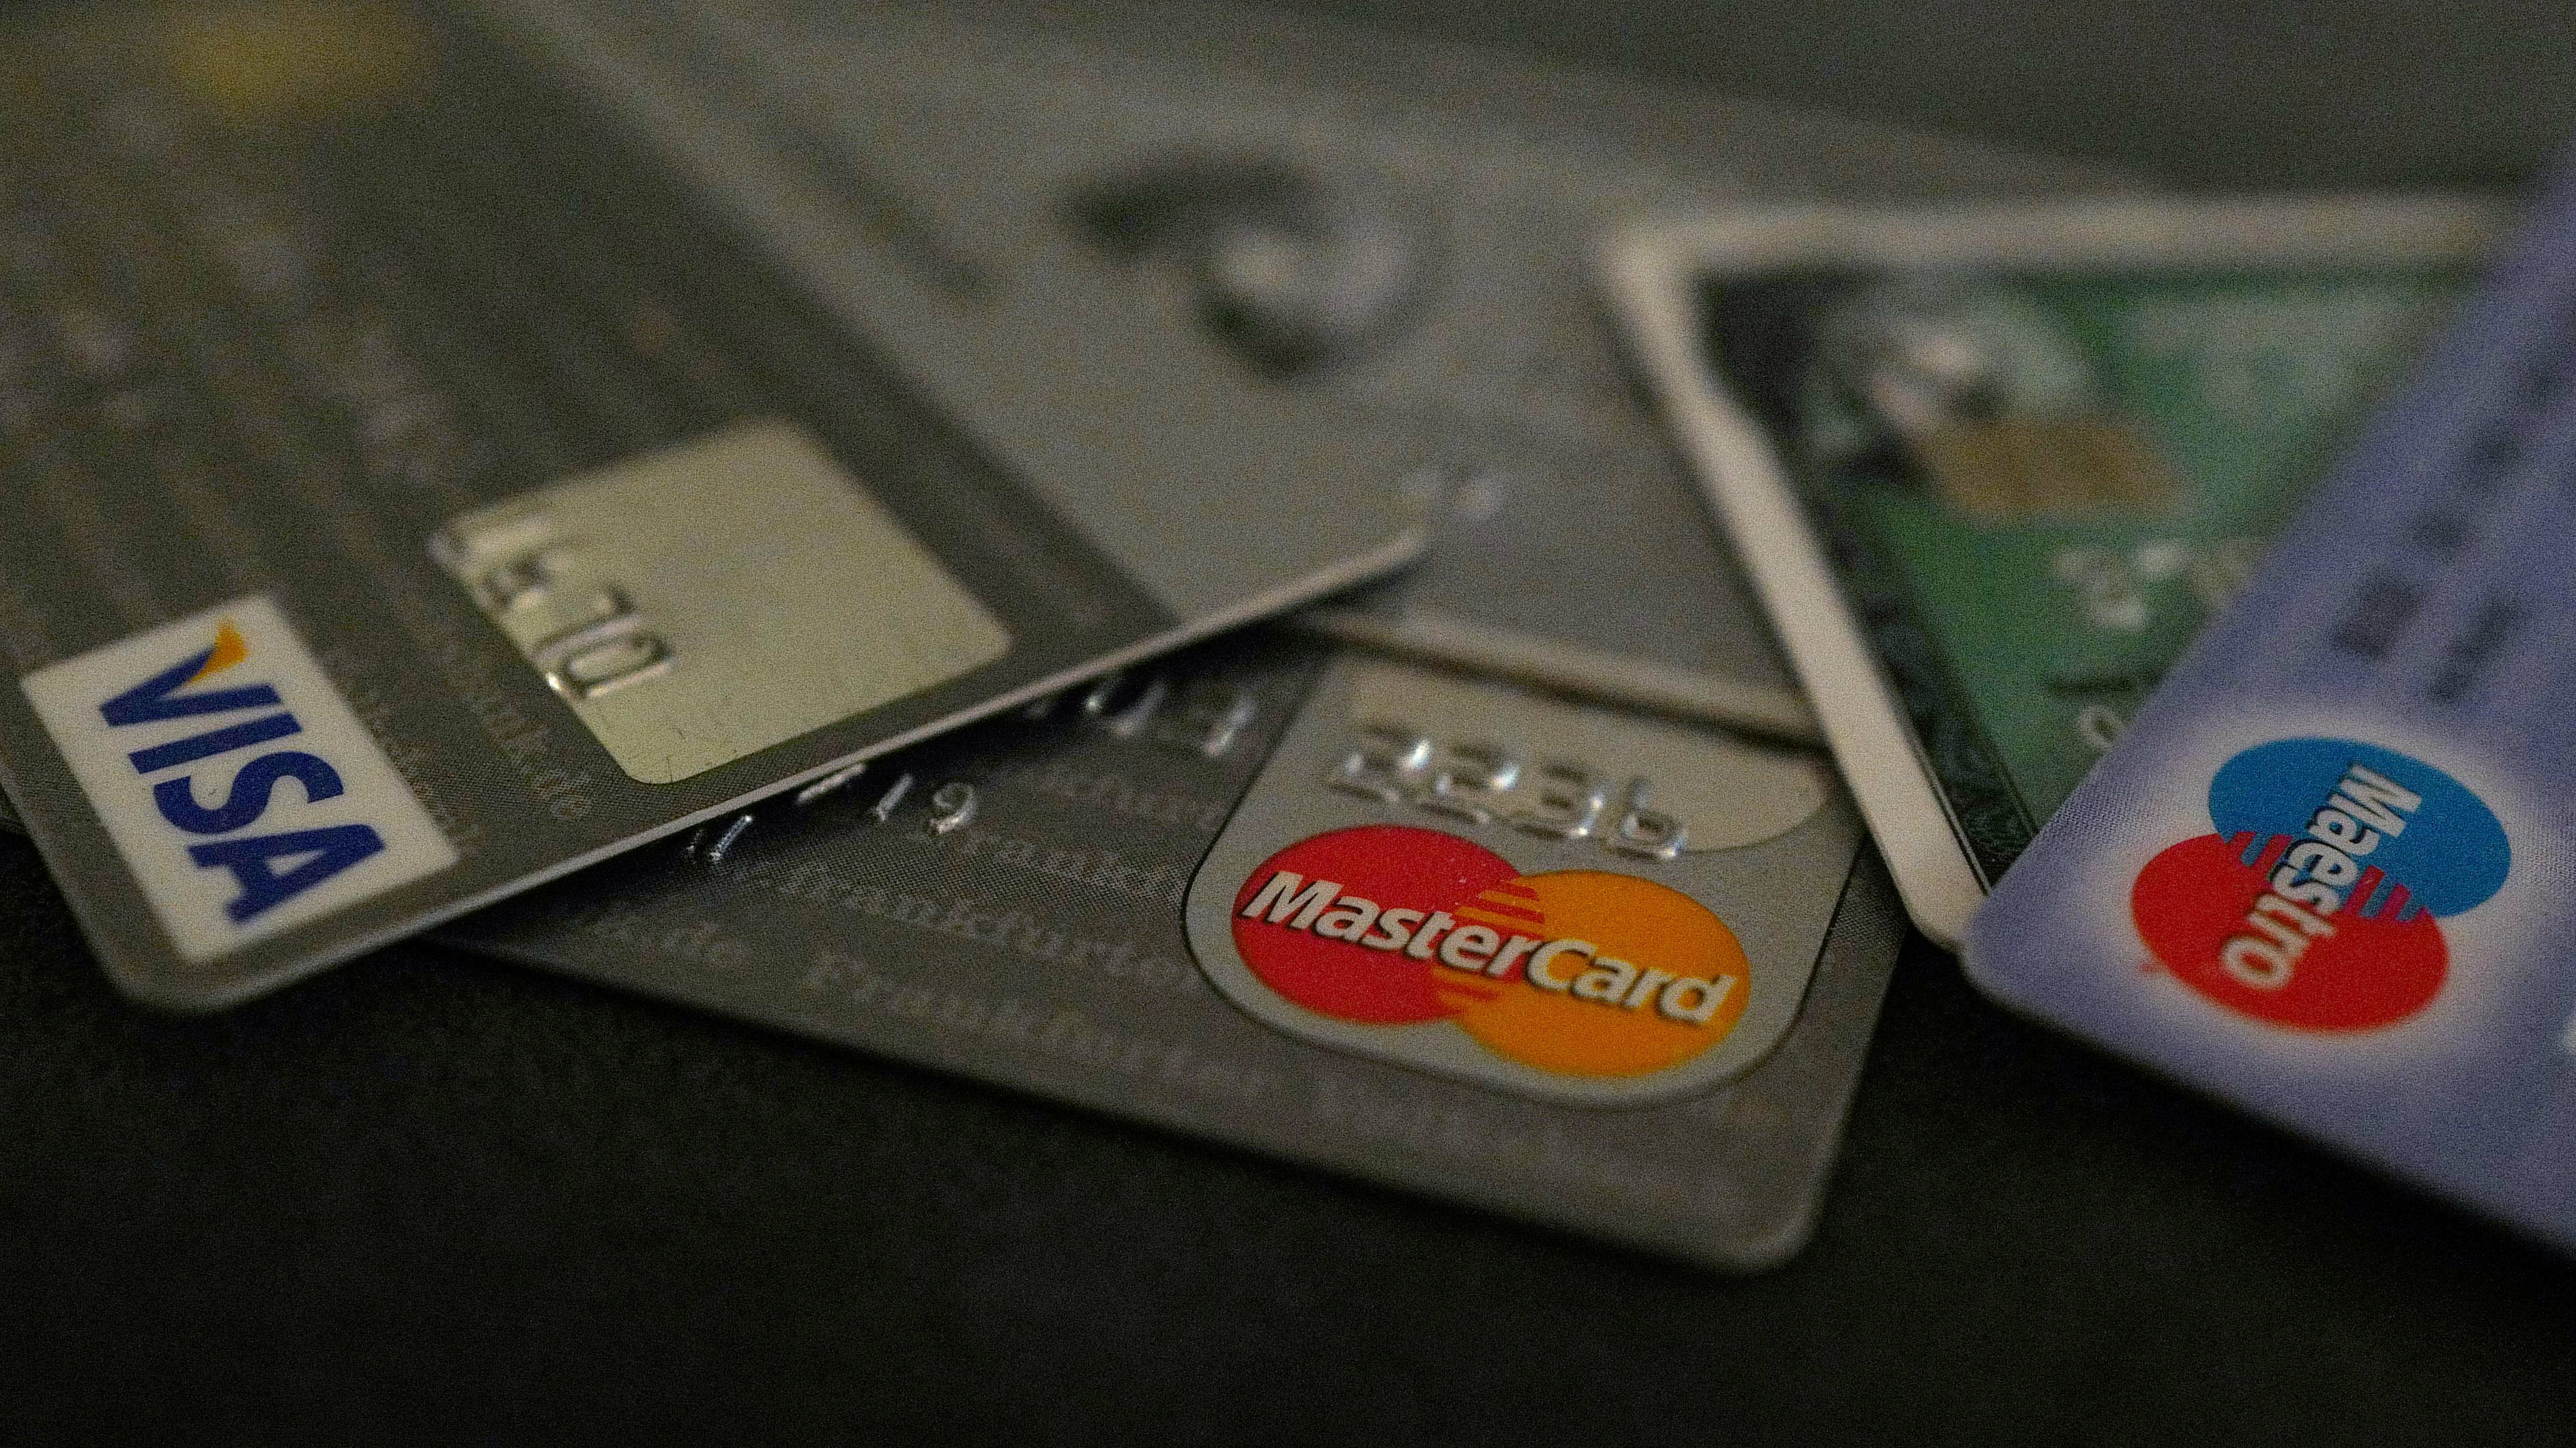 Debit card payments overtook cash transactions in the UK for